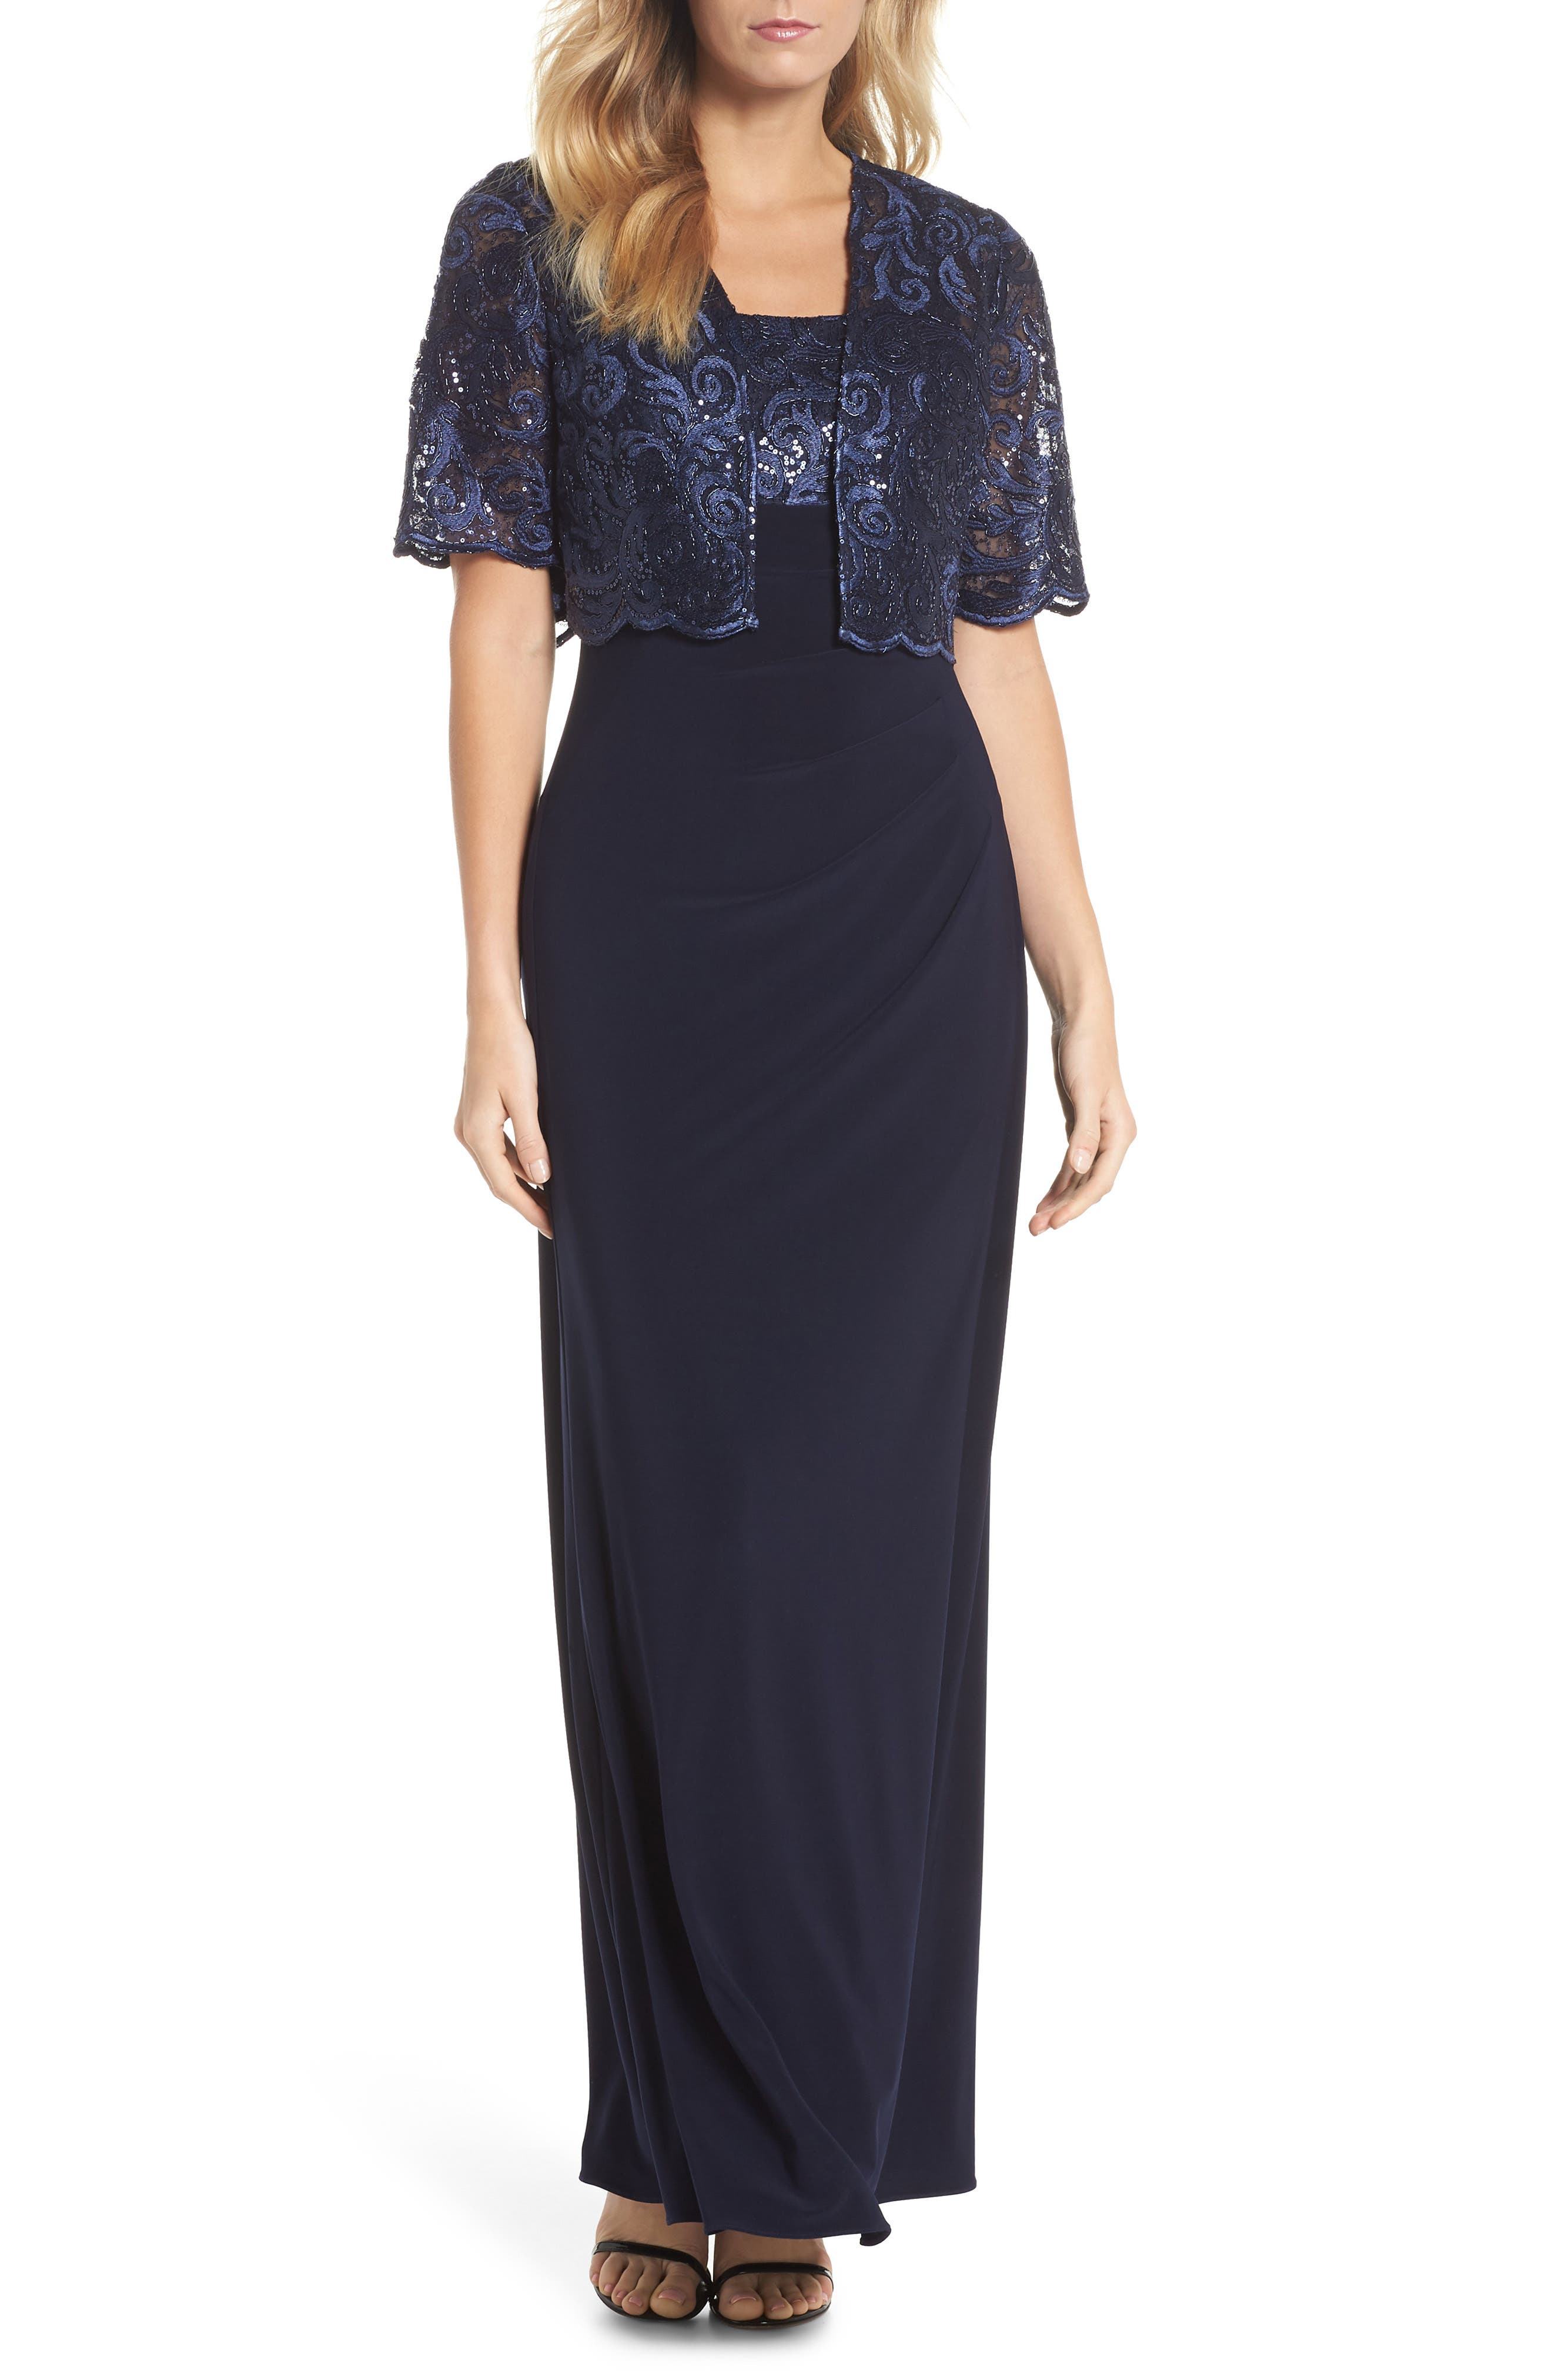 Sequin Embellished Gown with Bolero Jacket,                             Main thumbnail 1, color,                             Navy